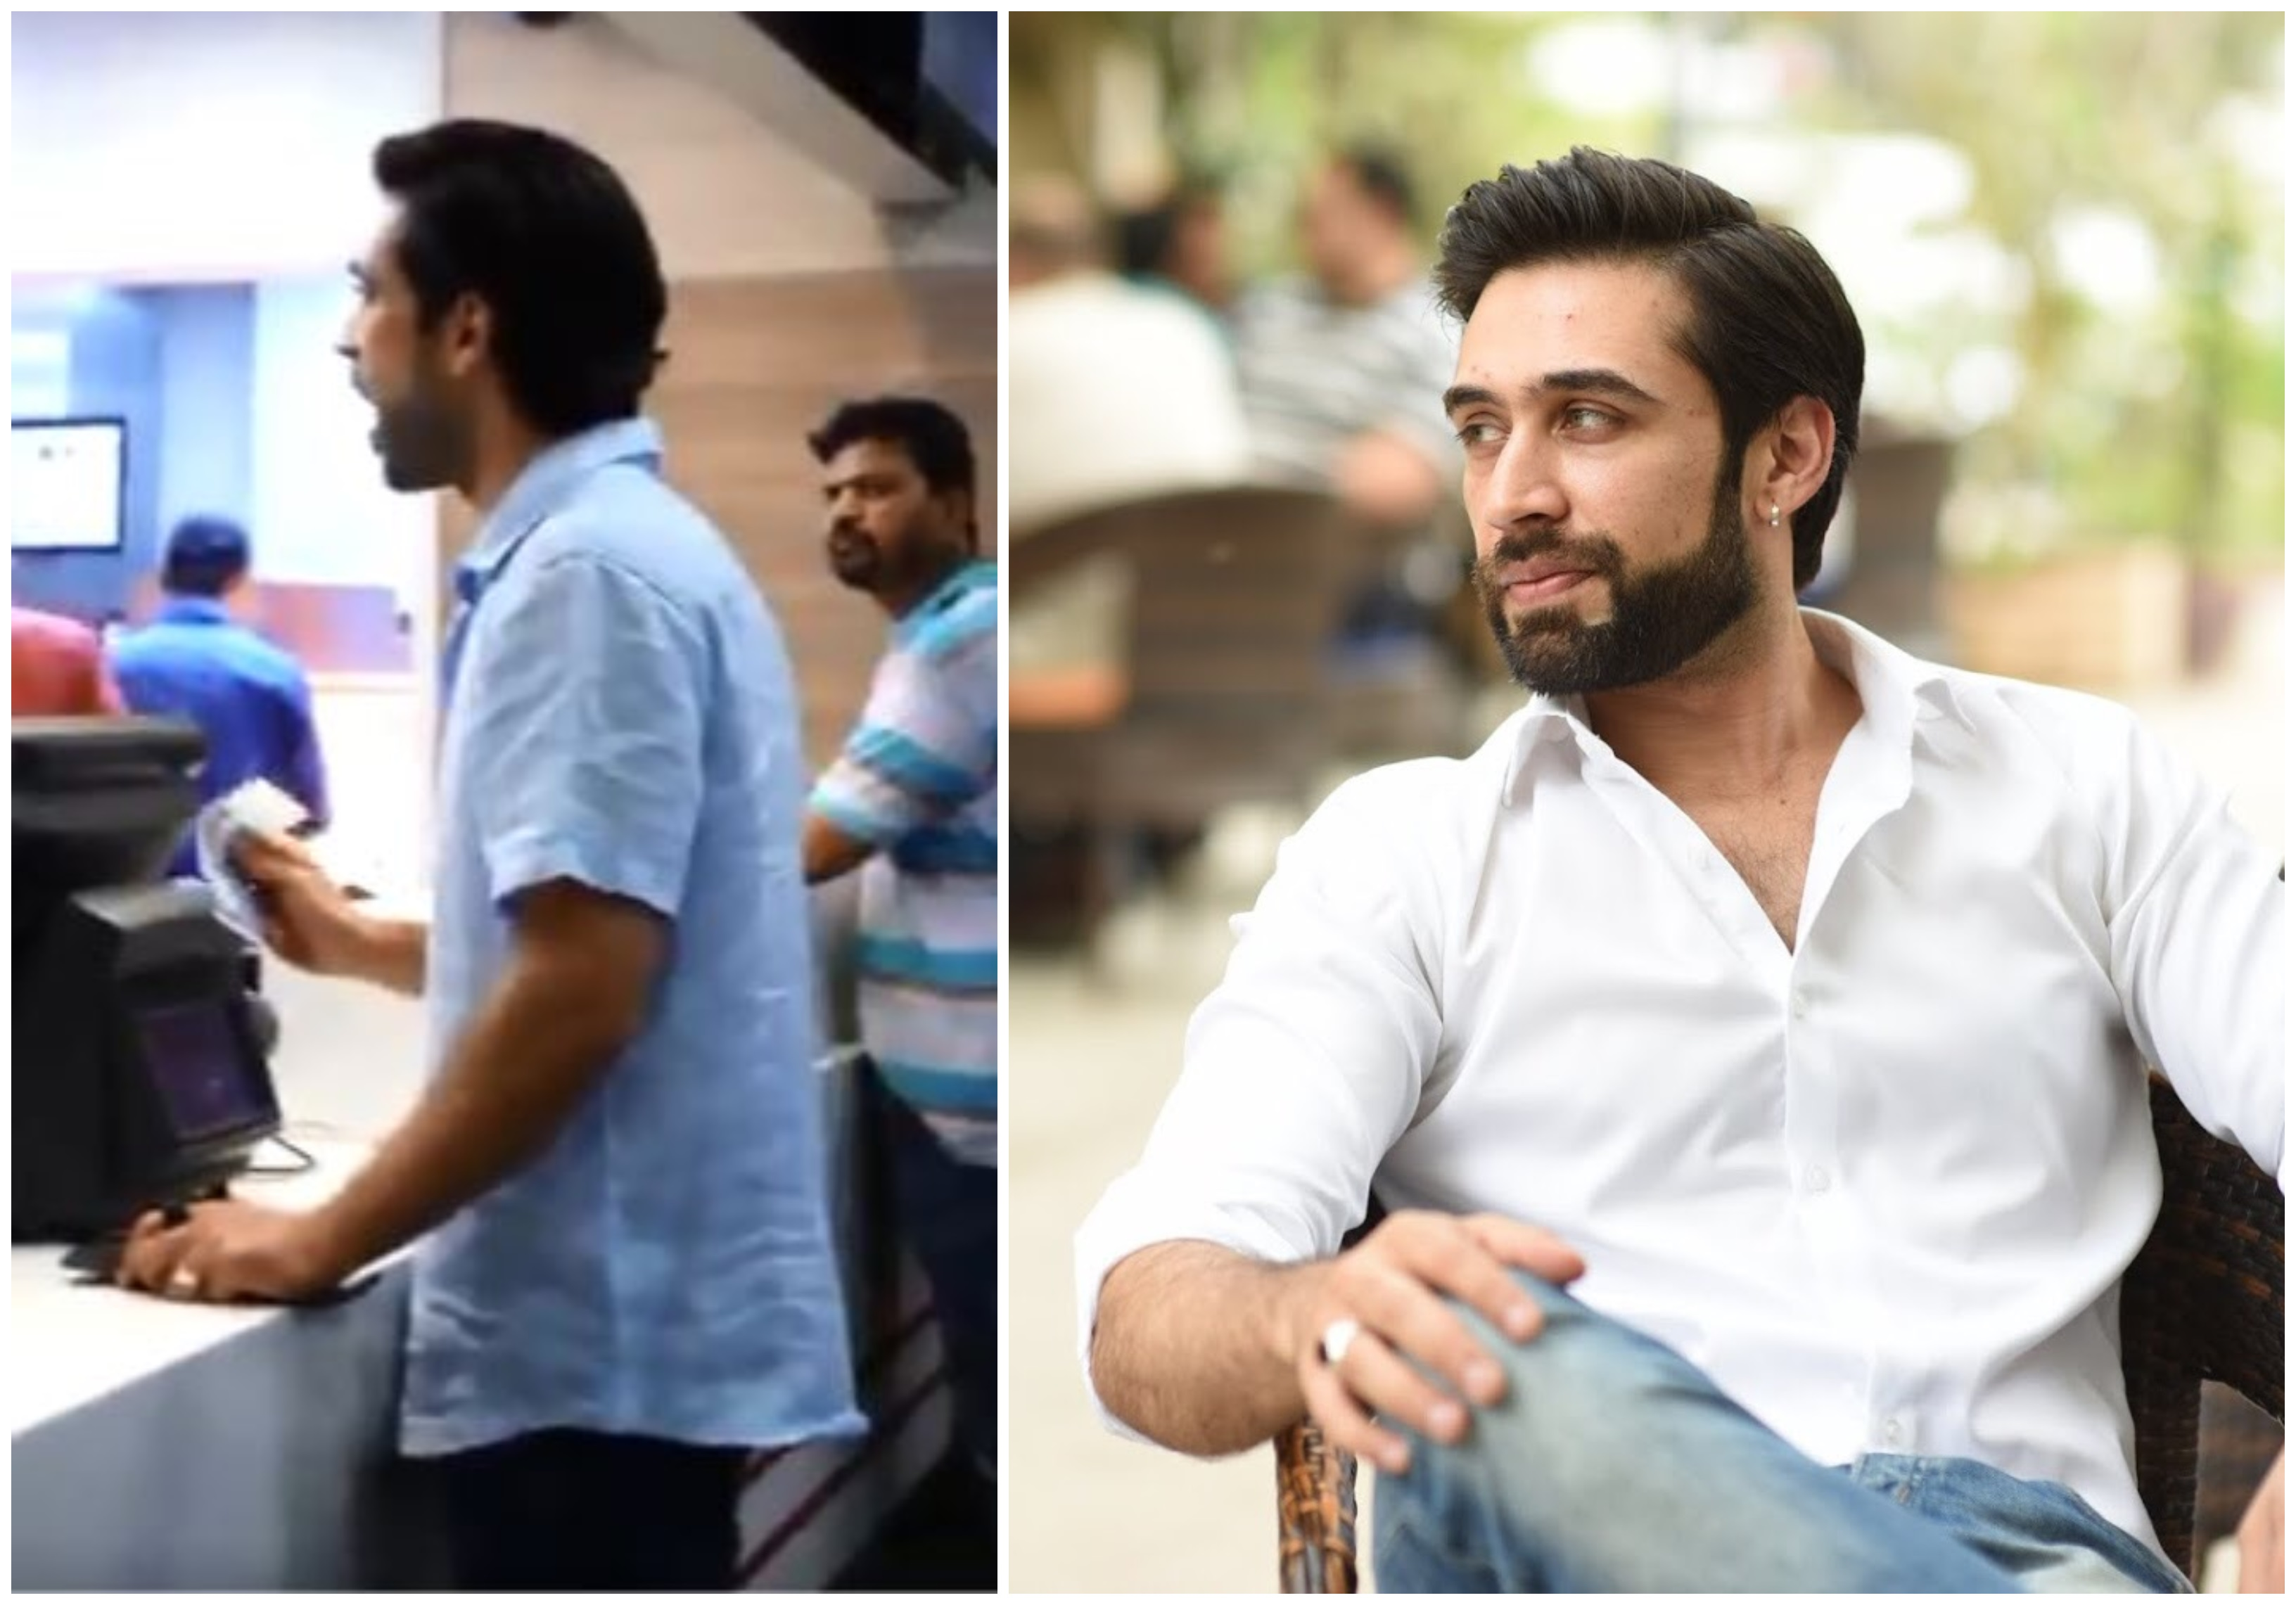 actor ali rehman khan lashes out at cashier in leaked video